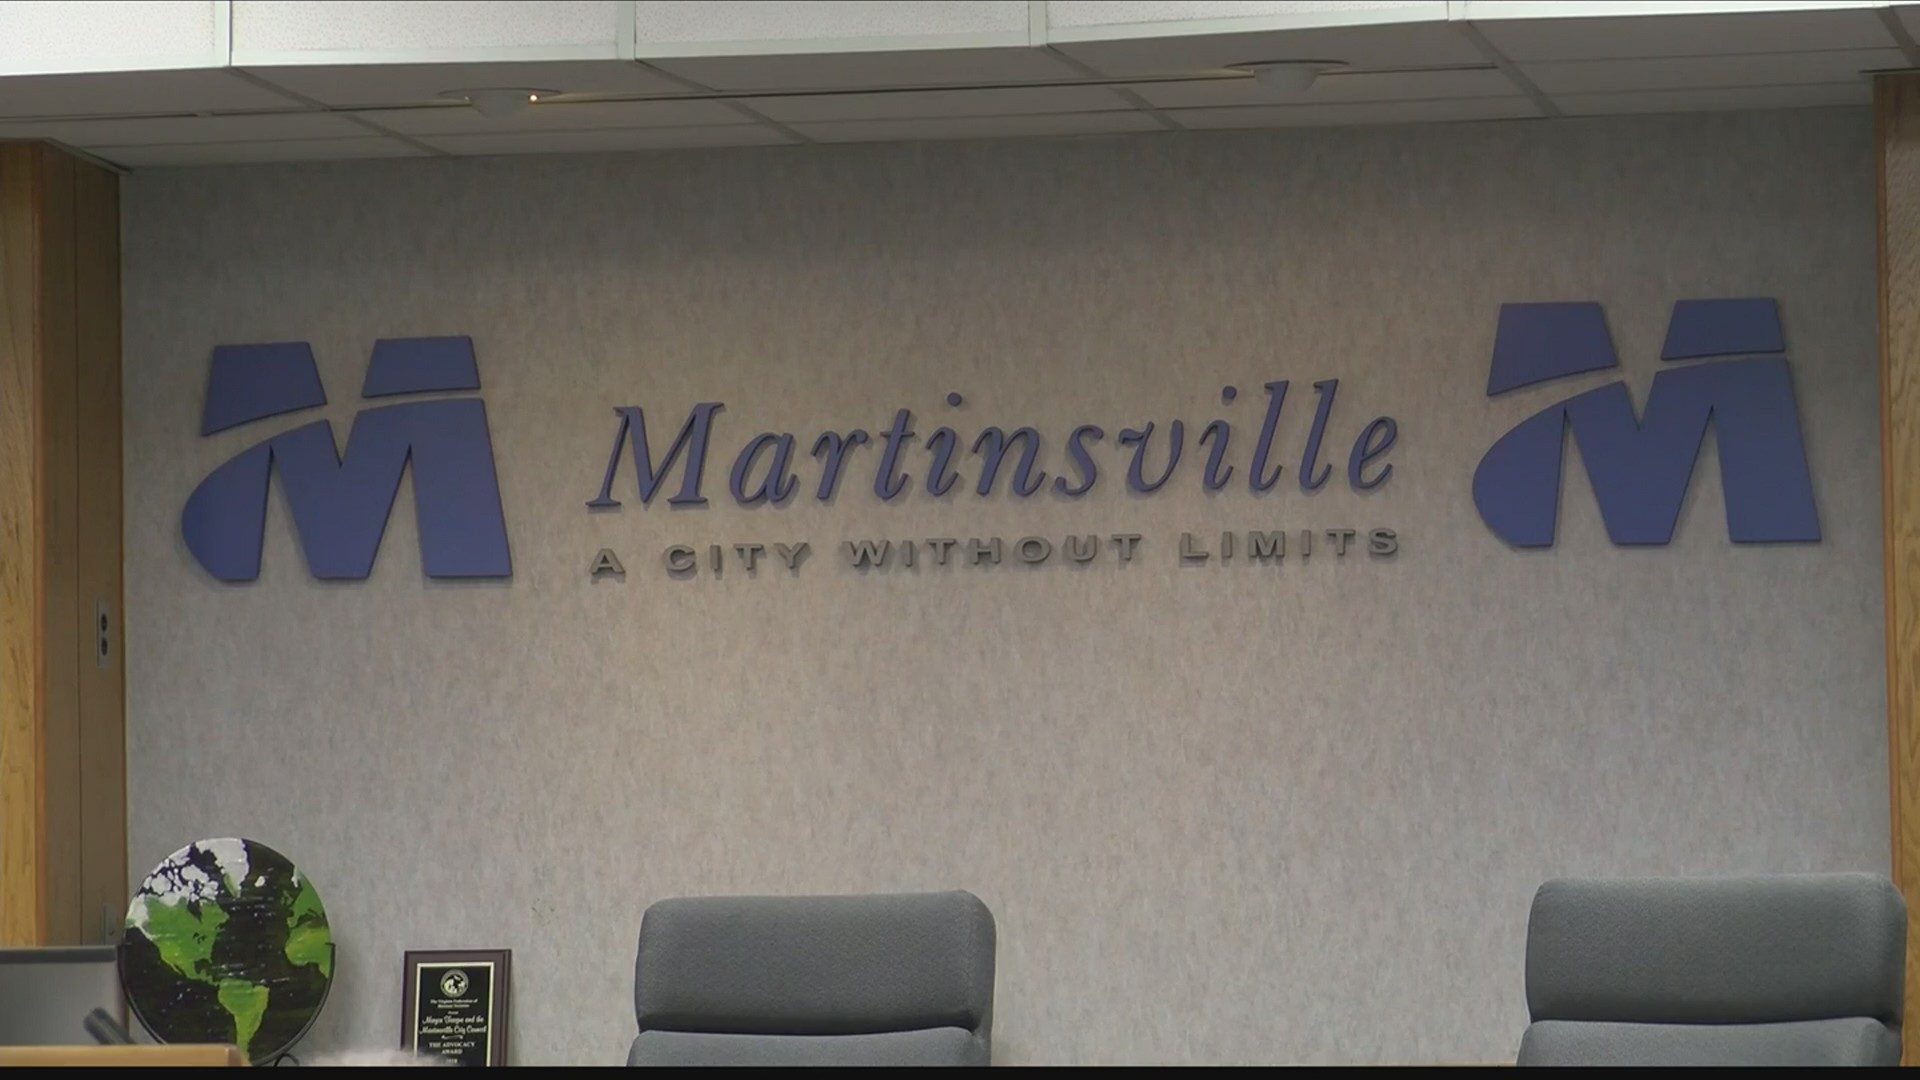 Will the city of Martinsville revert into a town